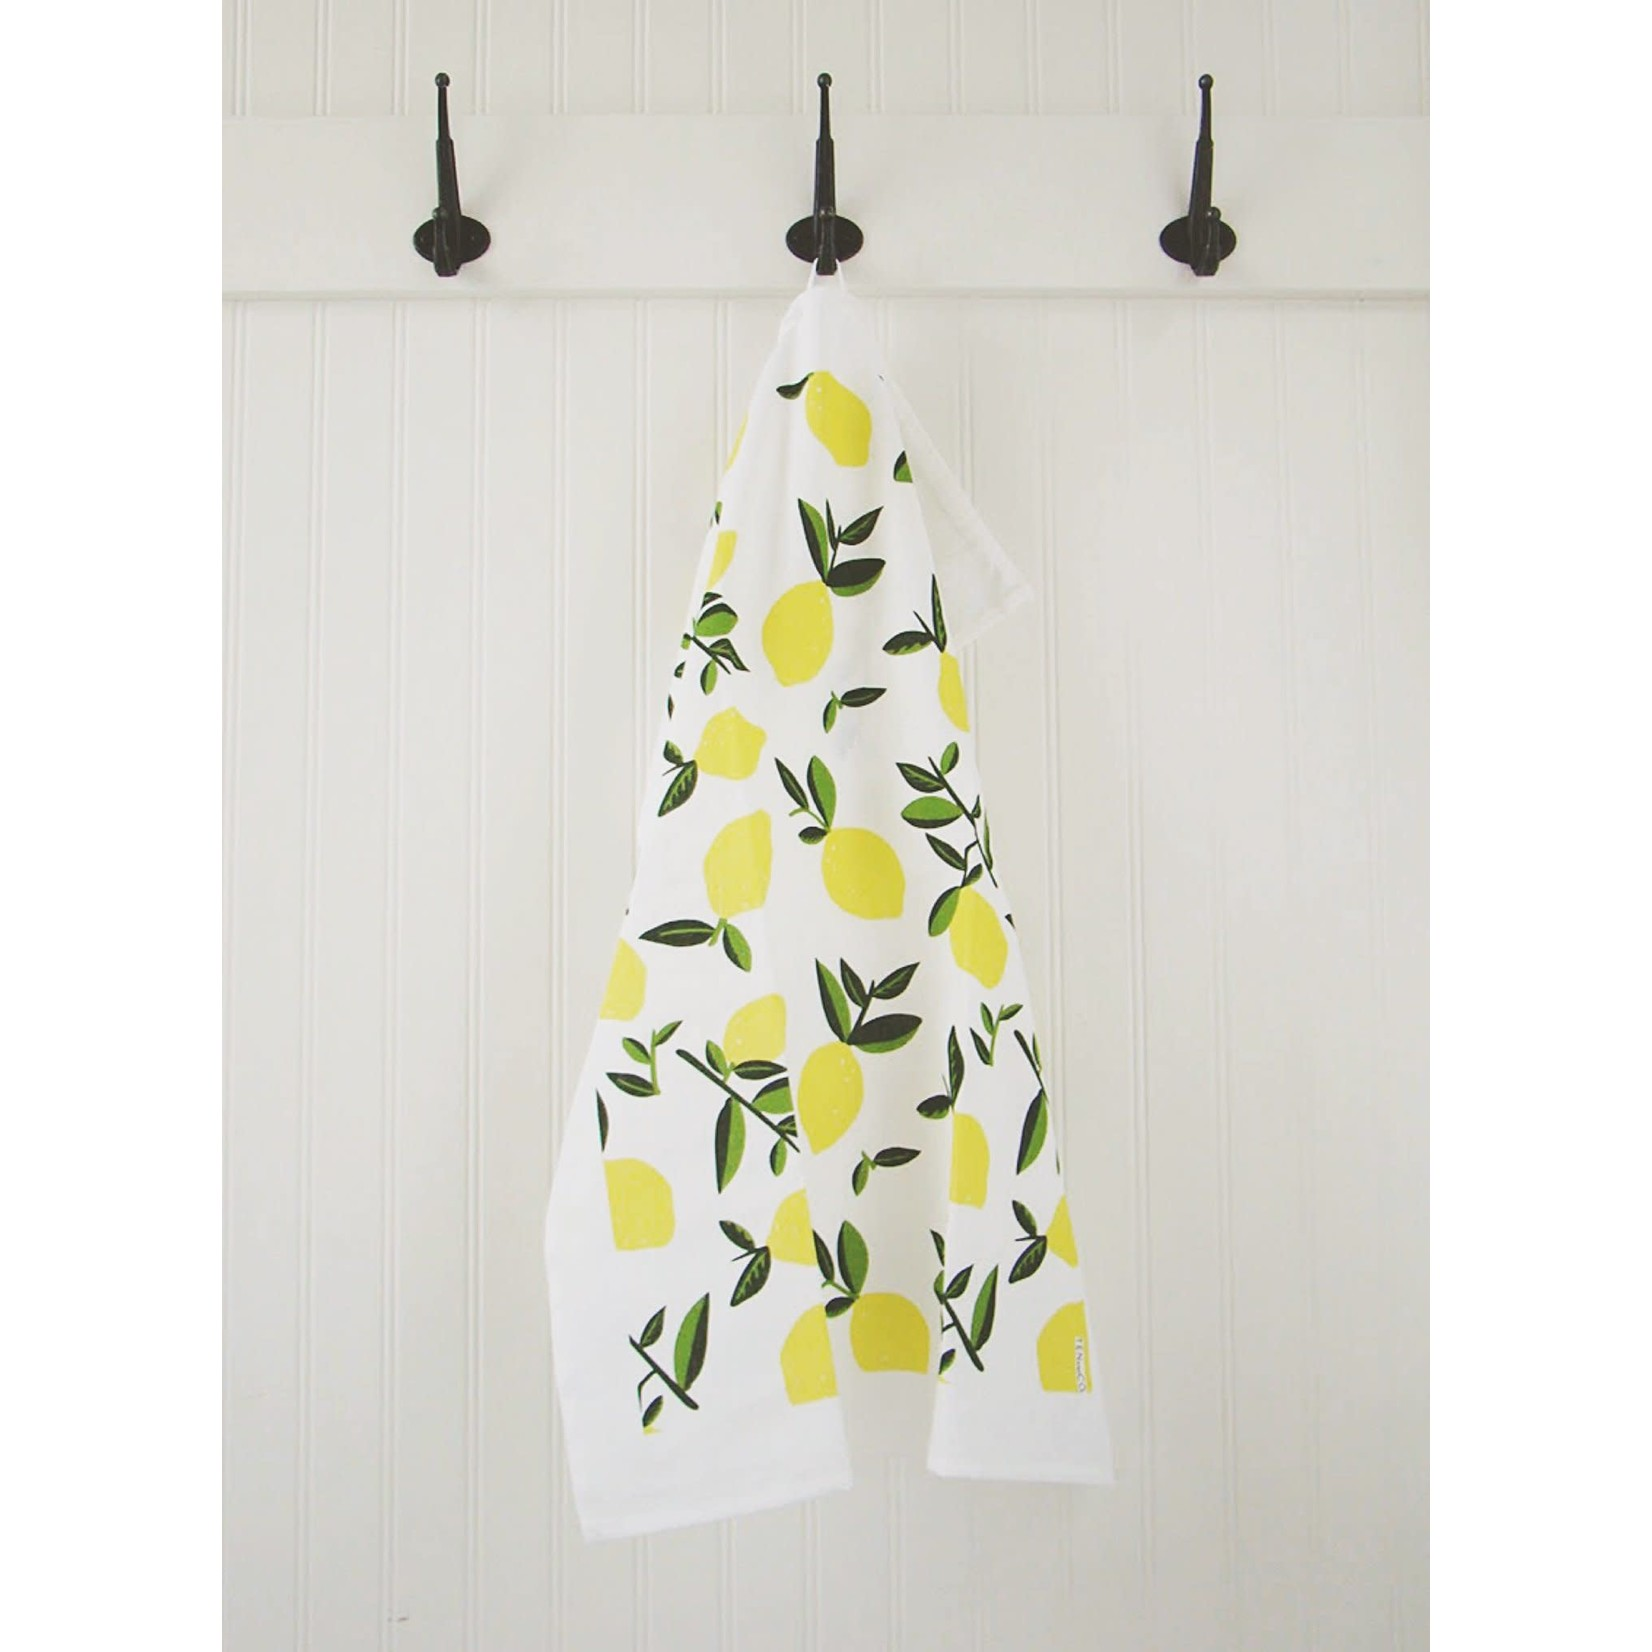 TEN AND CO. TEA TOWEL - CITRUS LEMON